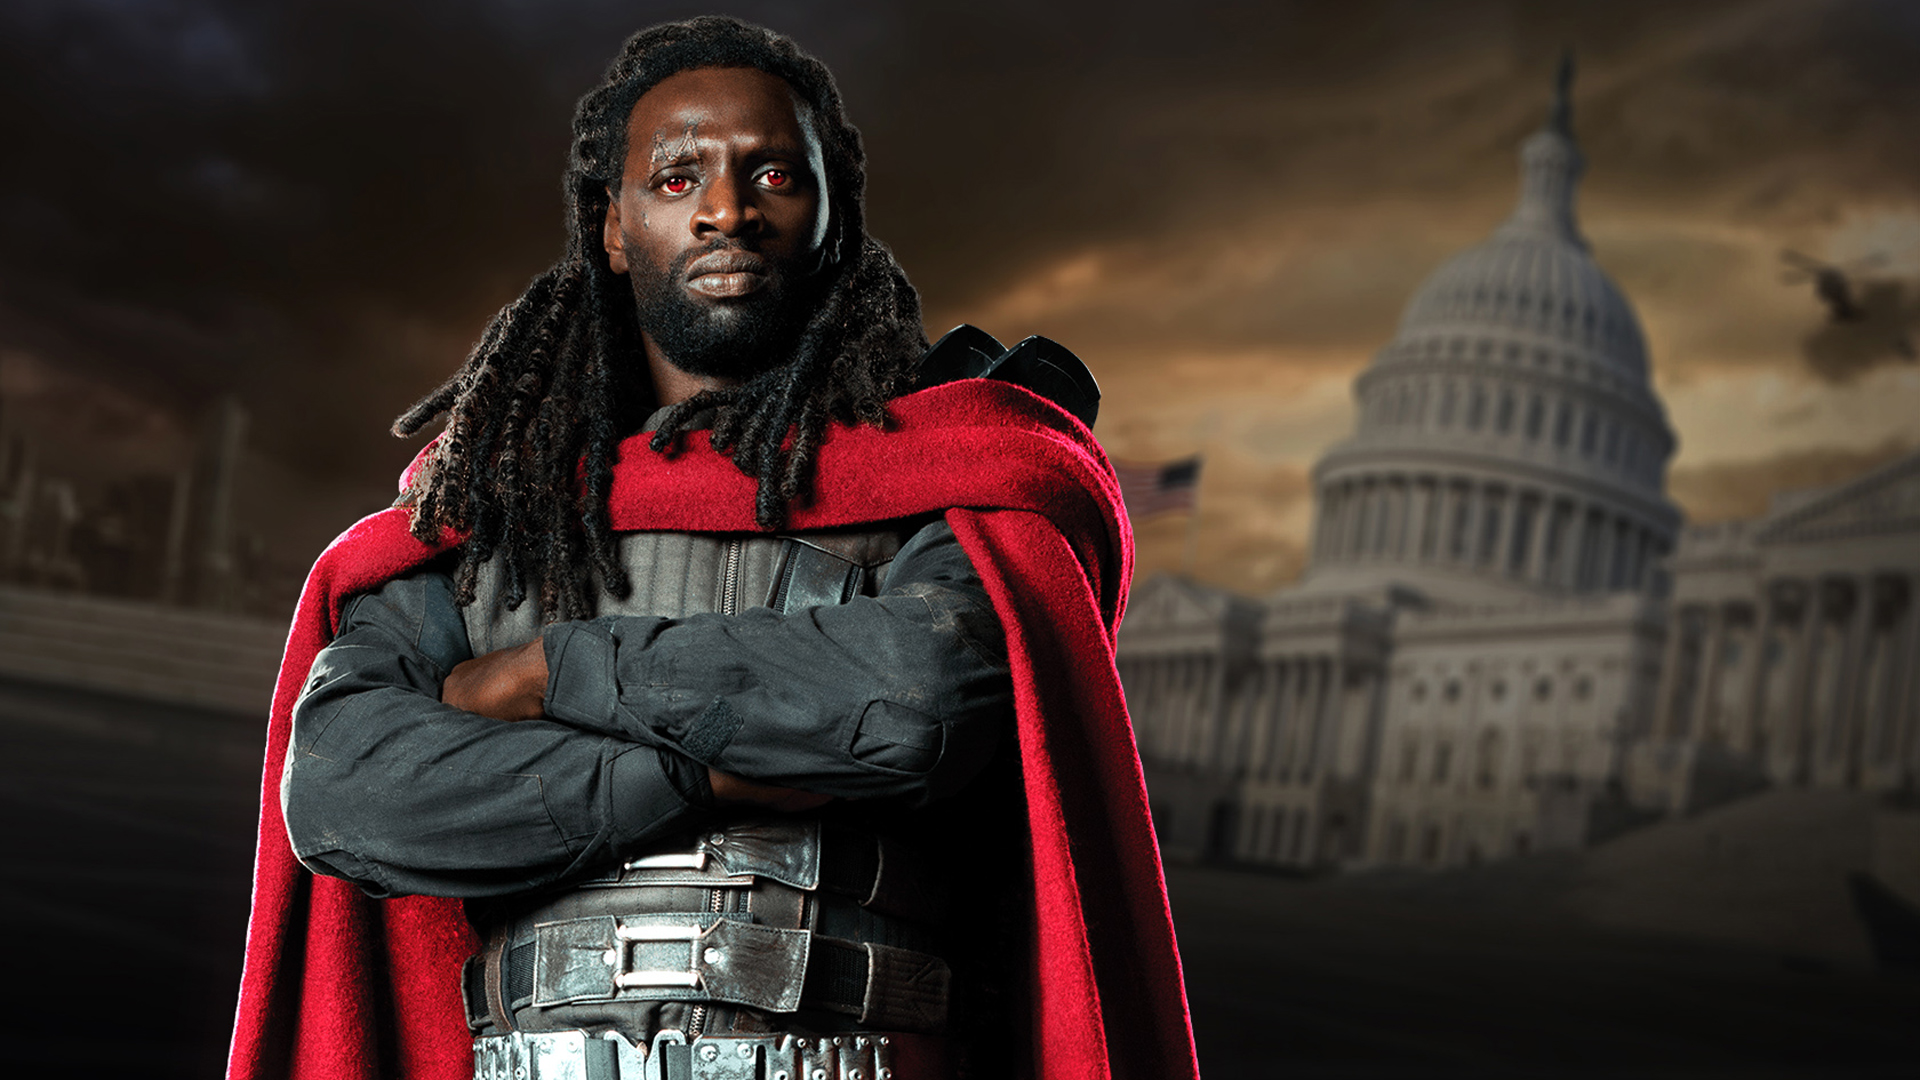 omar sy as bishop in x men days of future past 2014 movie hd ... X Men Days Of Future Past Bishop